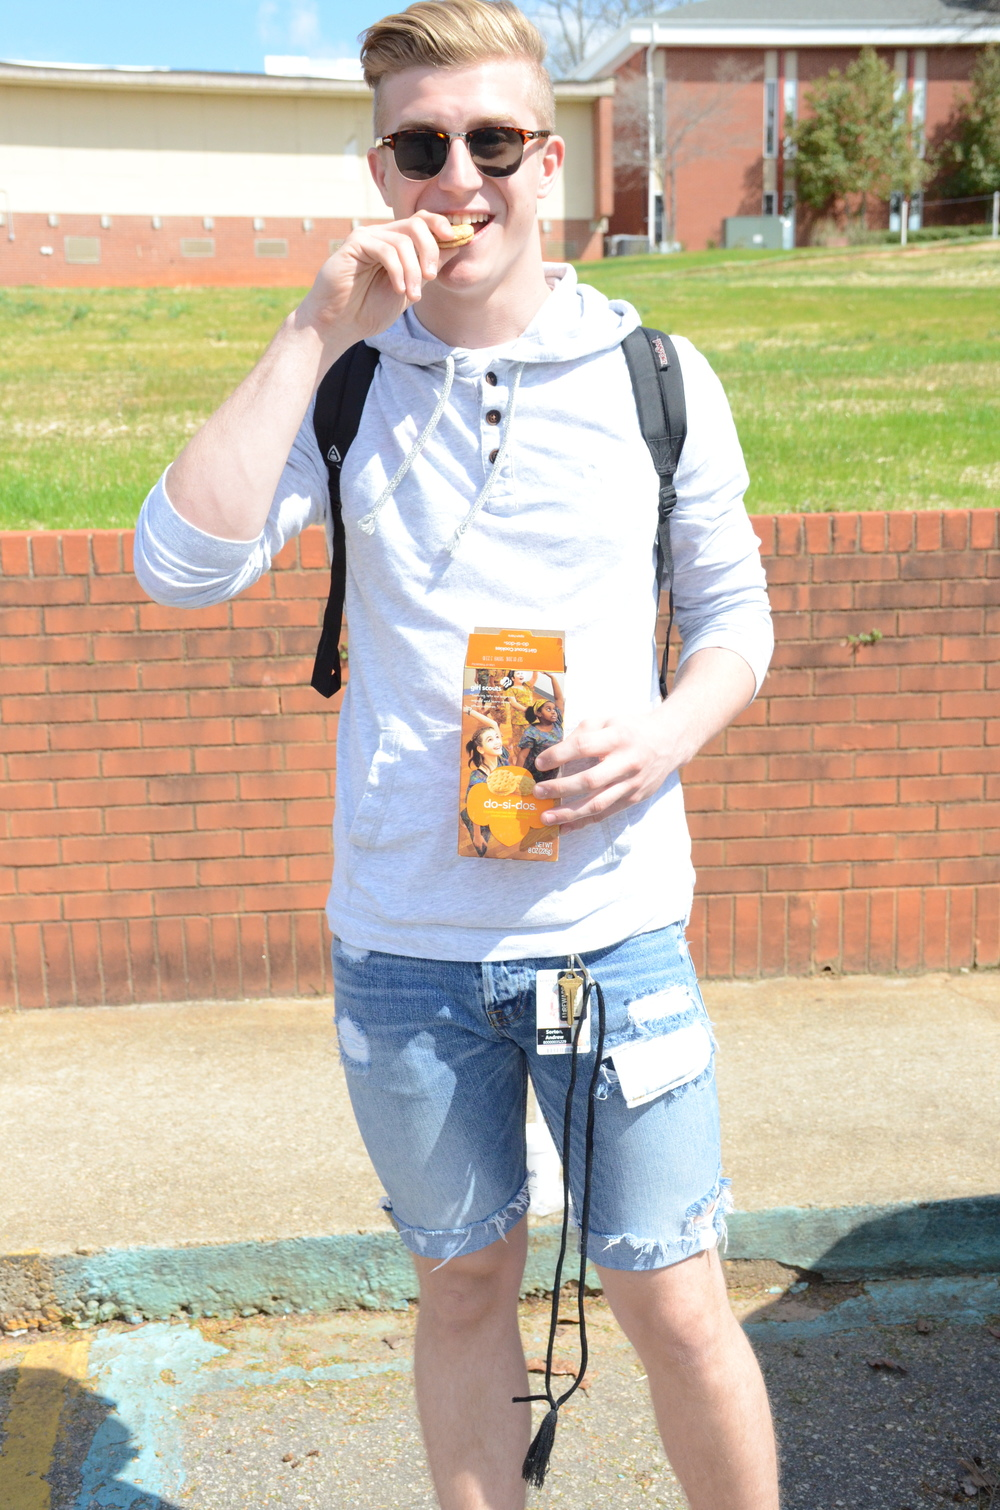 Andrew Sorton includes his Girl Scout cookies with his stylish outfit.